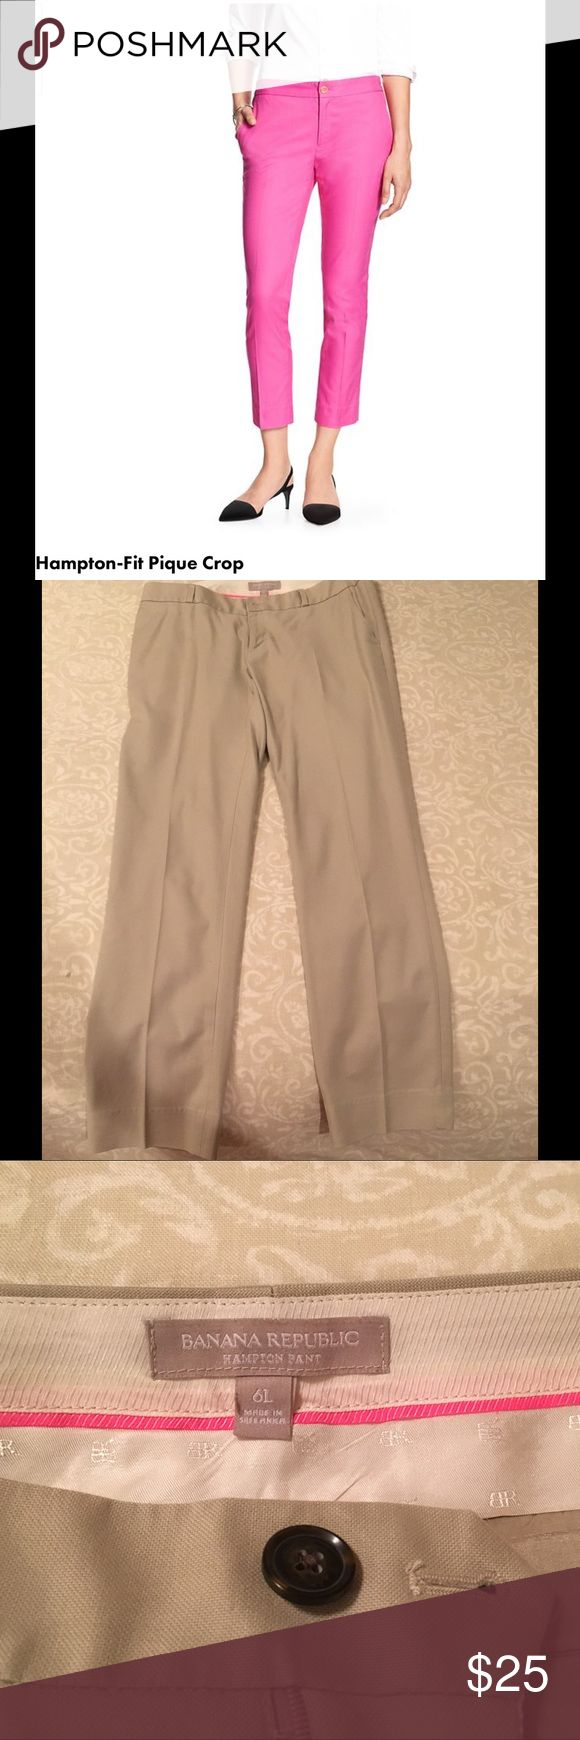 """Banana Republic Hampton Fit Crop Pant in Stone The Hampton Fit crop pant by banana republic. It is a very light khaki or stone color. This is a 6 long. I am 5'9"""" and this was the perfect length, hitting top of my ankle. The 6 fits me well, I am a 29-30 in jeans. Perfect for work with heels! No stains or imperfections. Banana Republic Pants Ankle & Cropped"""